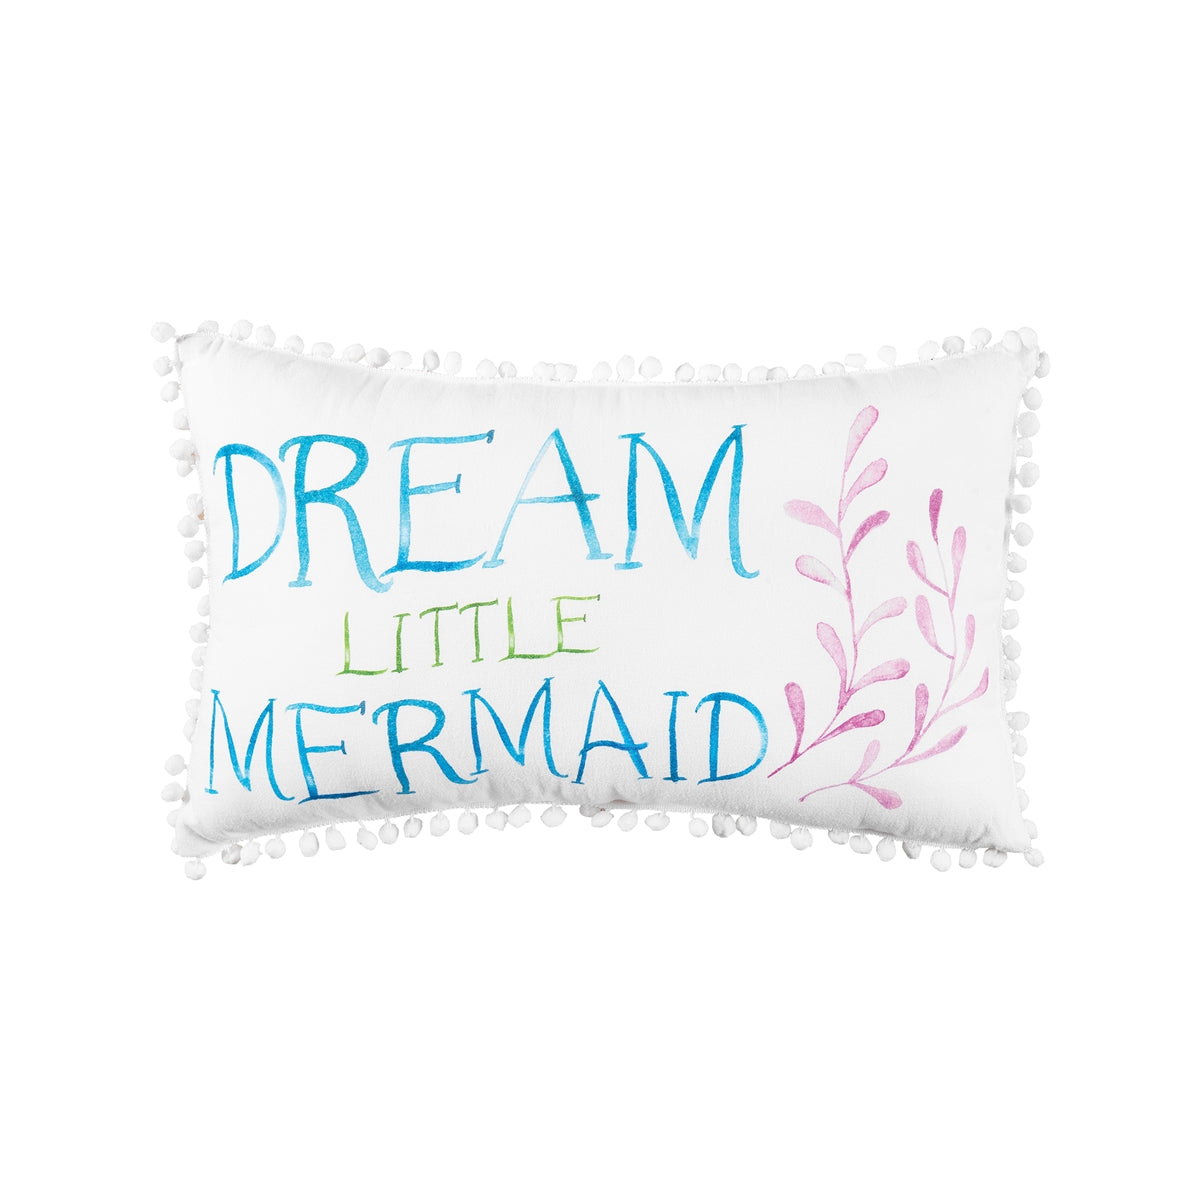 Mermaid Garden Dream